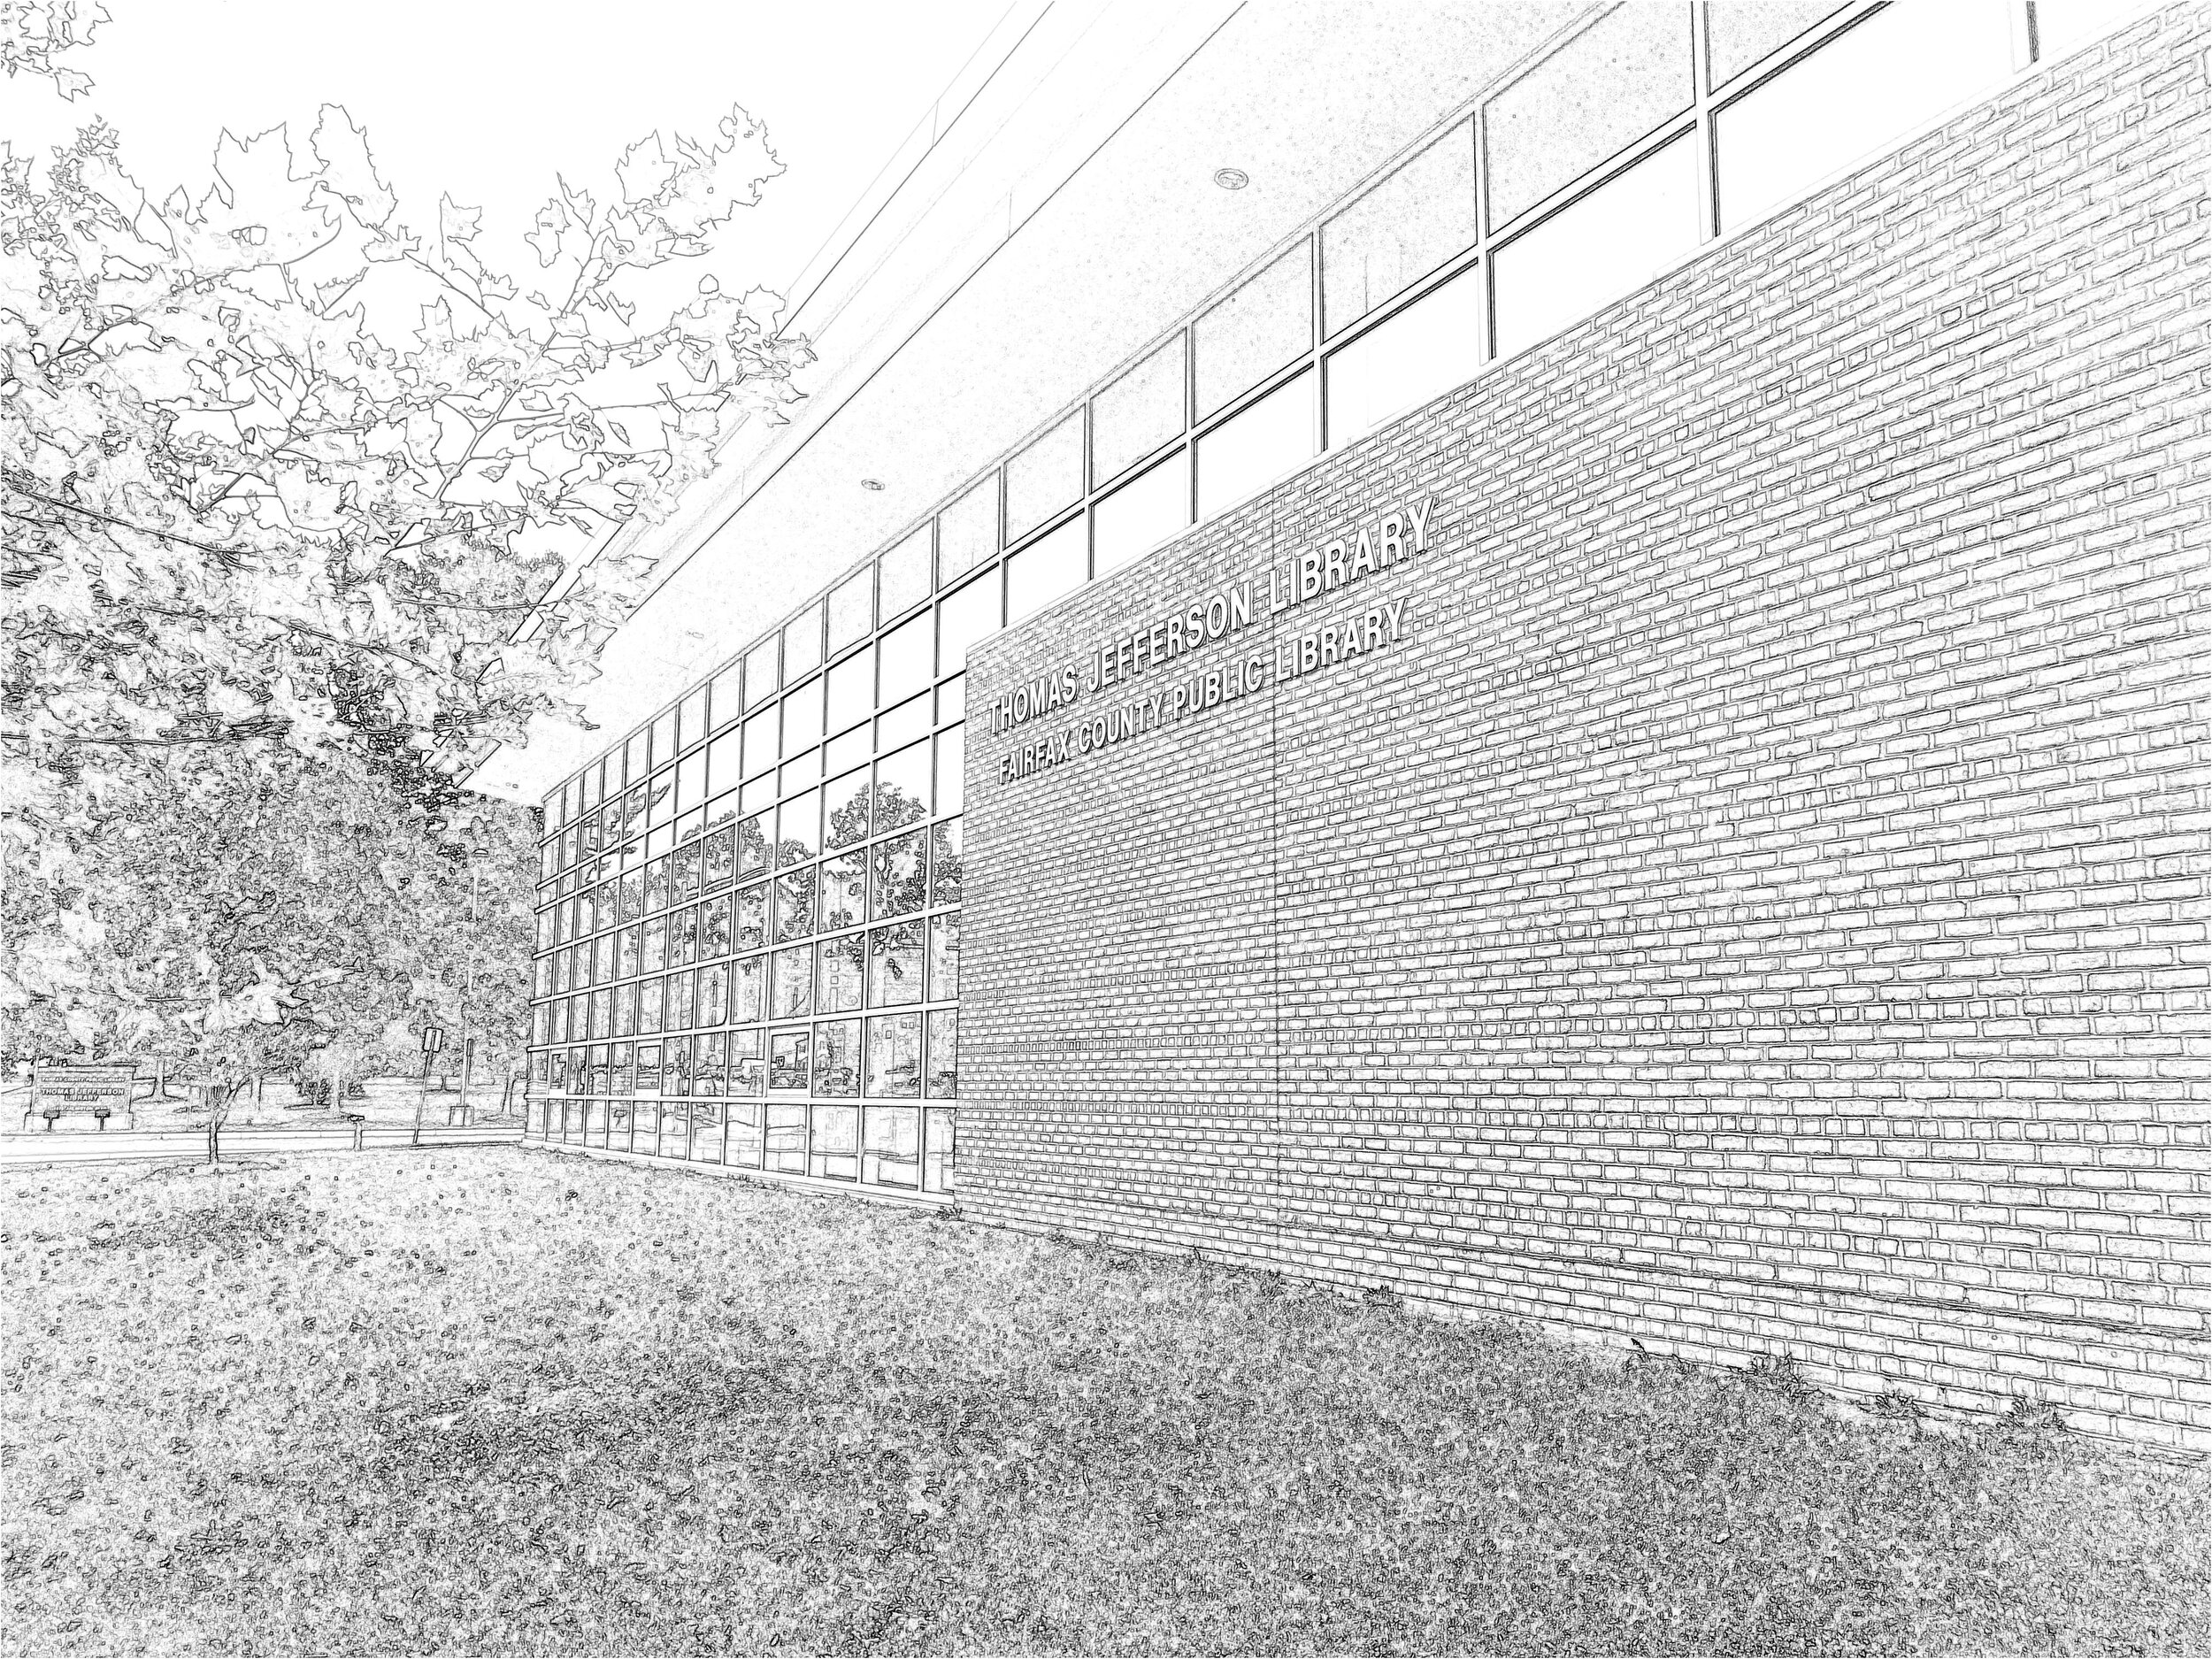 The Thomas Jefferson branch of the Fairfax County Library system. The Dato's Haberdashery website was launched here on Saturday, October 14, 2017. (Produced with my iPhone and the PhotoSketcher app.)